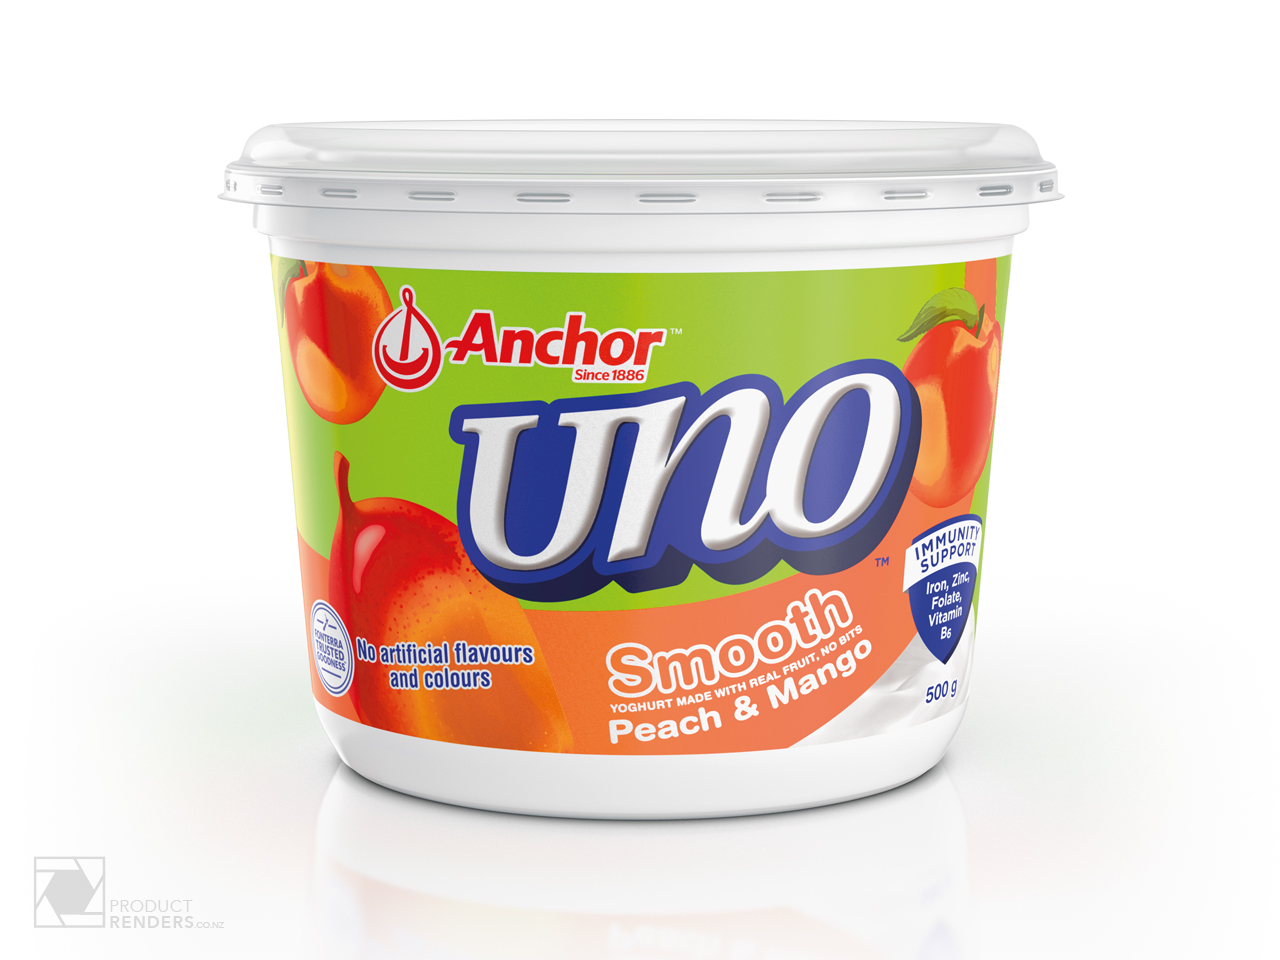 3D render of an Anchor Uno Peach & Mango yoghurt tub packaging.